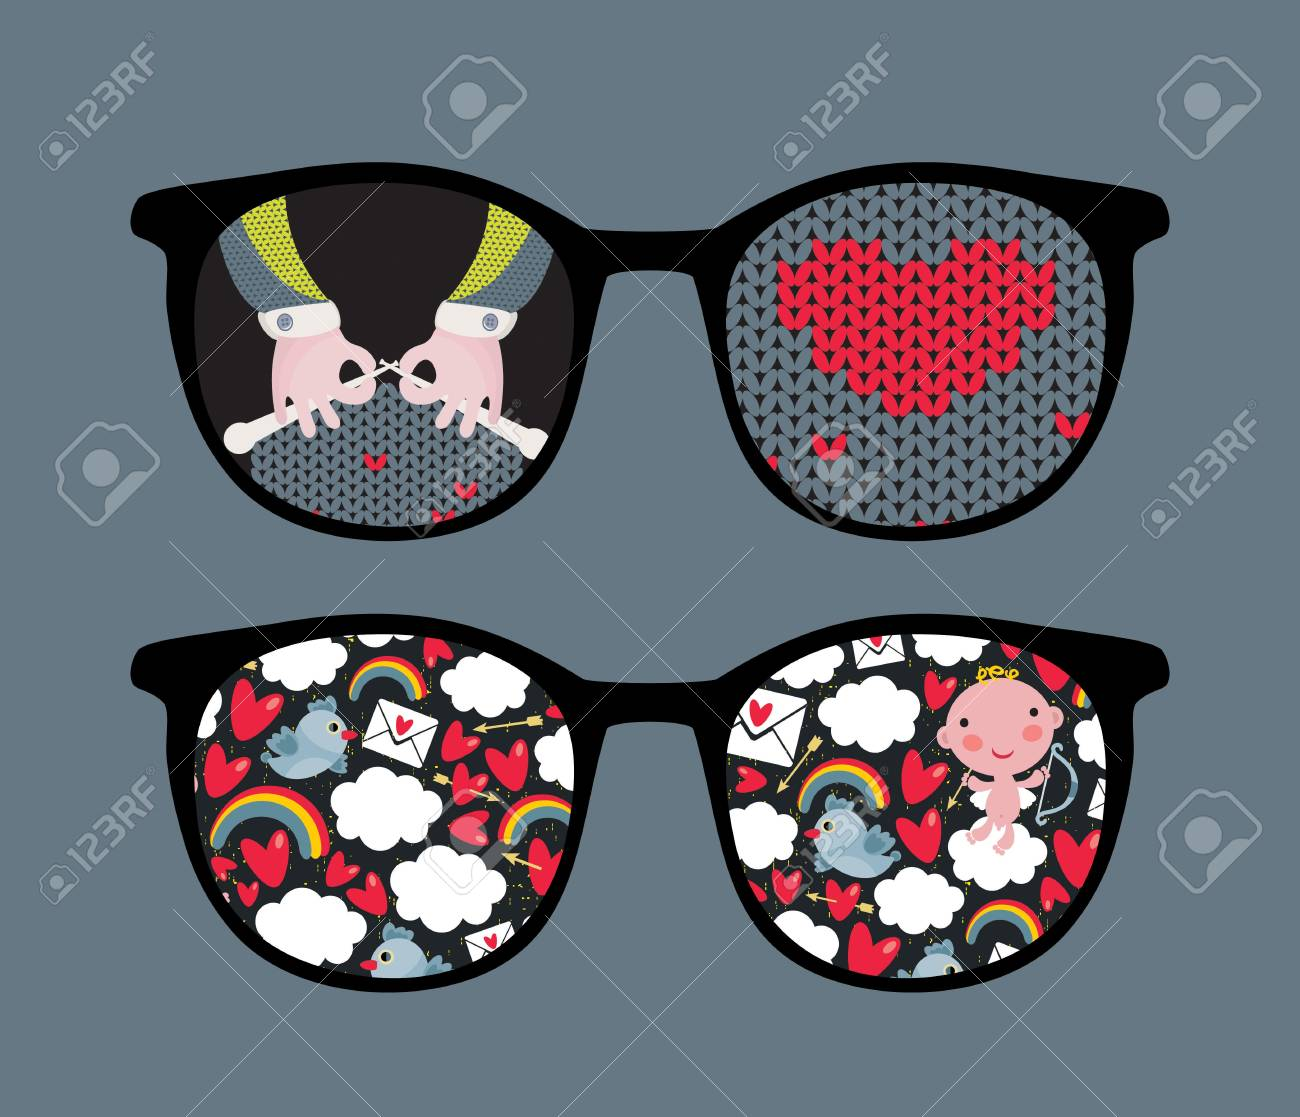 Retro eyeglasses with cute and romantic reflection in it Stock Vector - 13057903